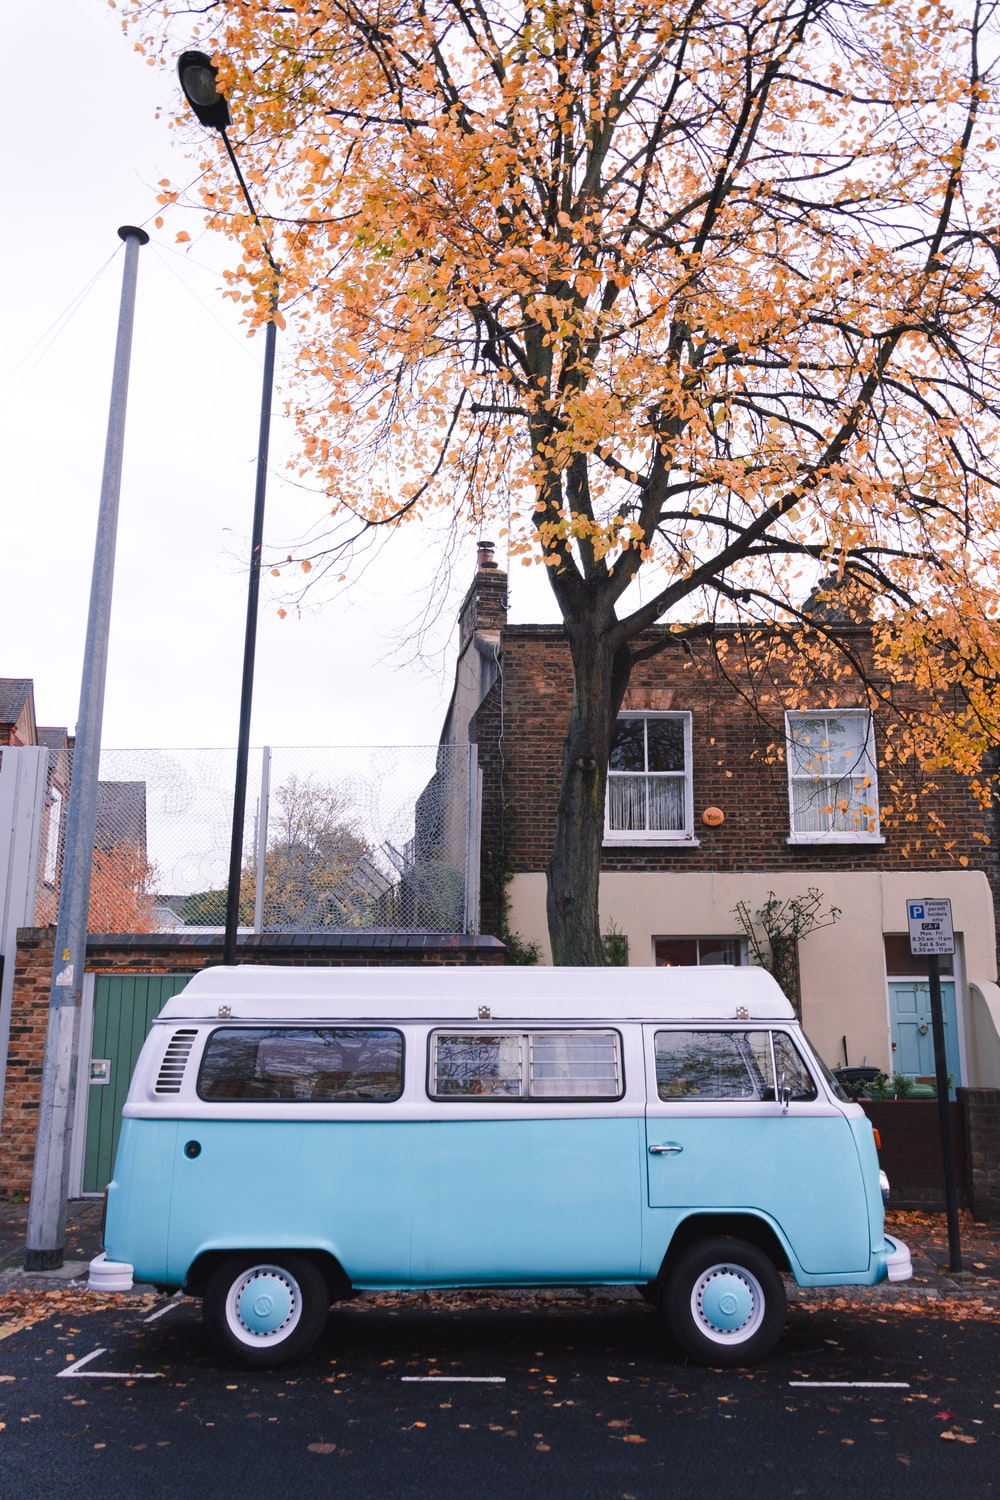 whiet and blue van